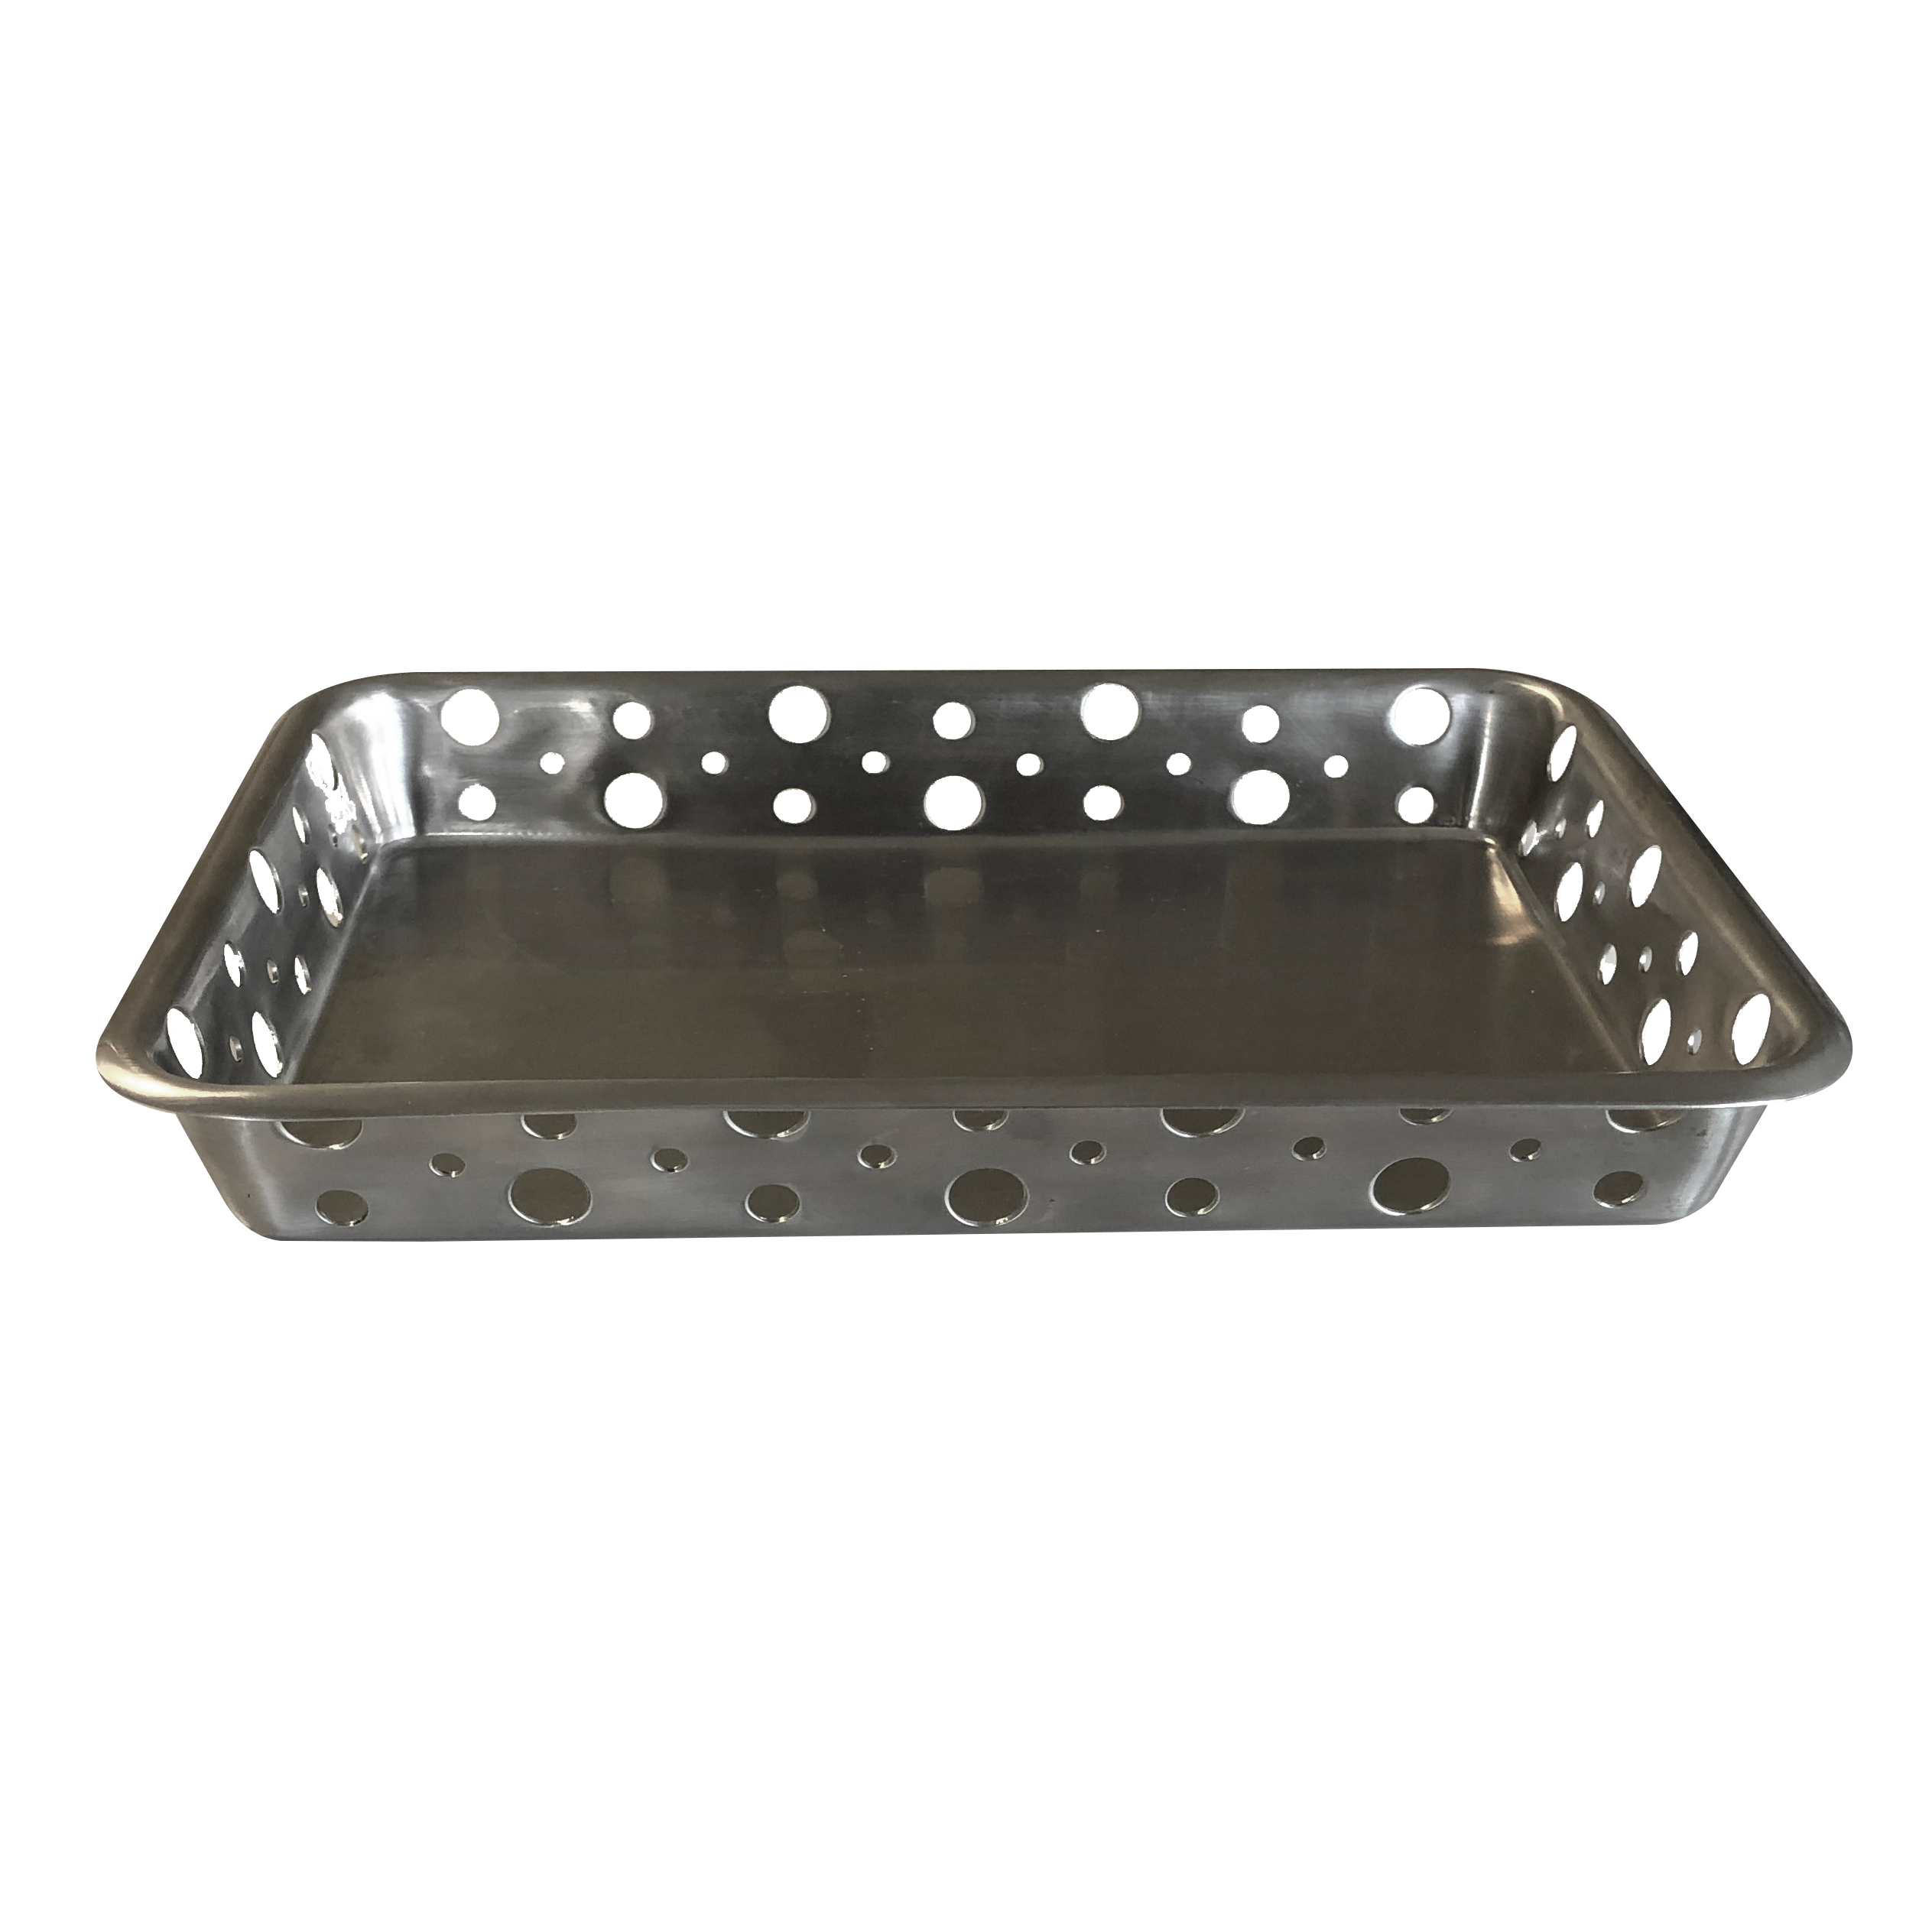 TableCraft Products SCB139 serving & display tray, metal